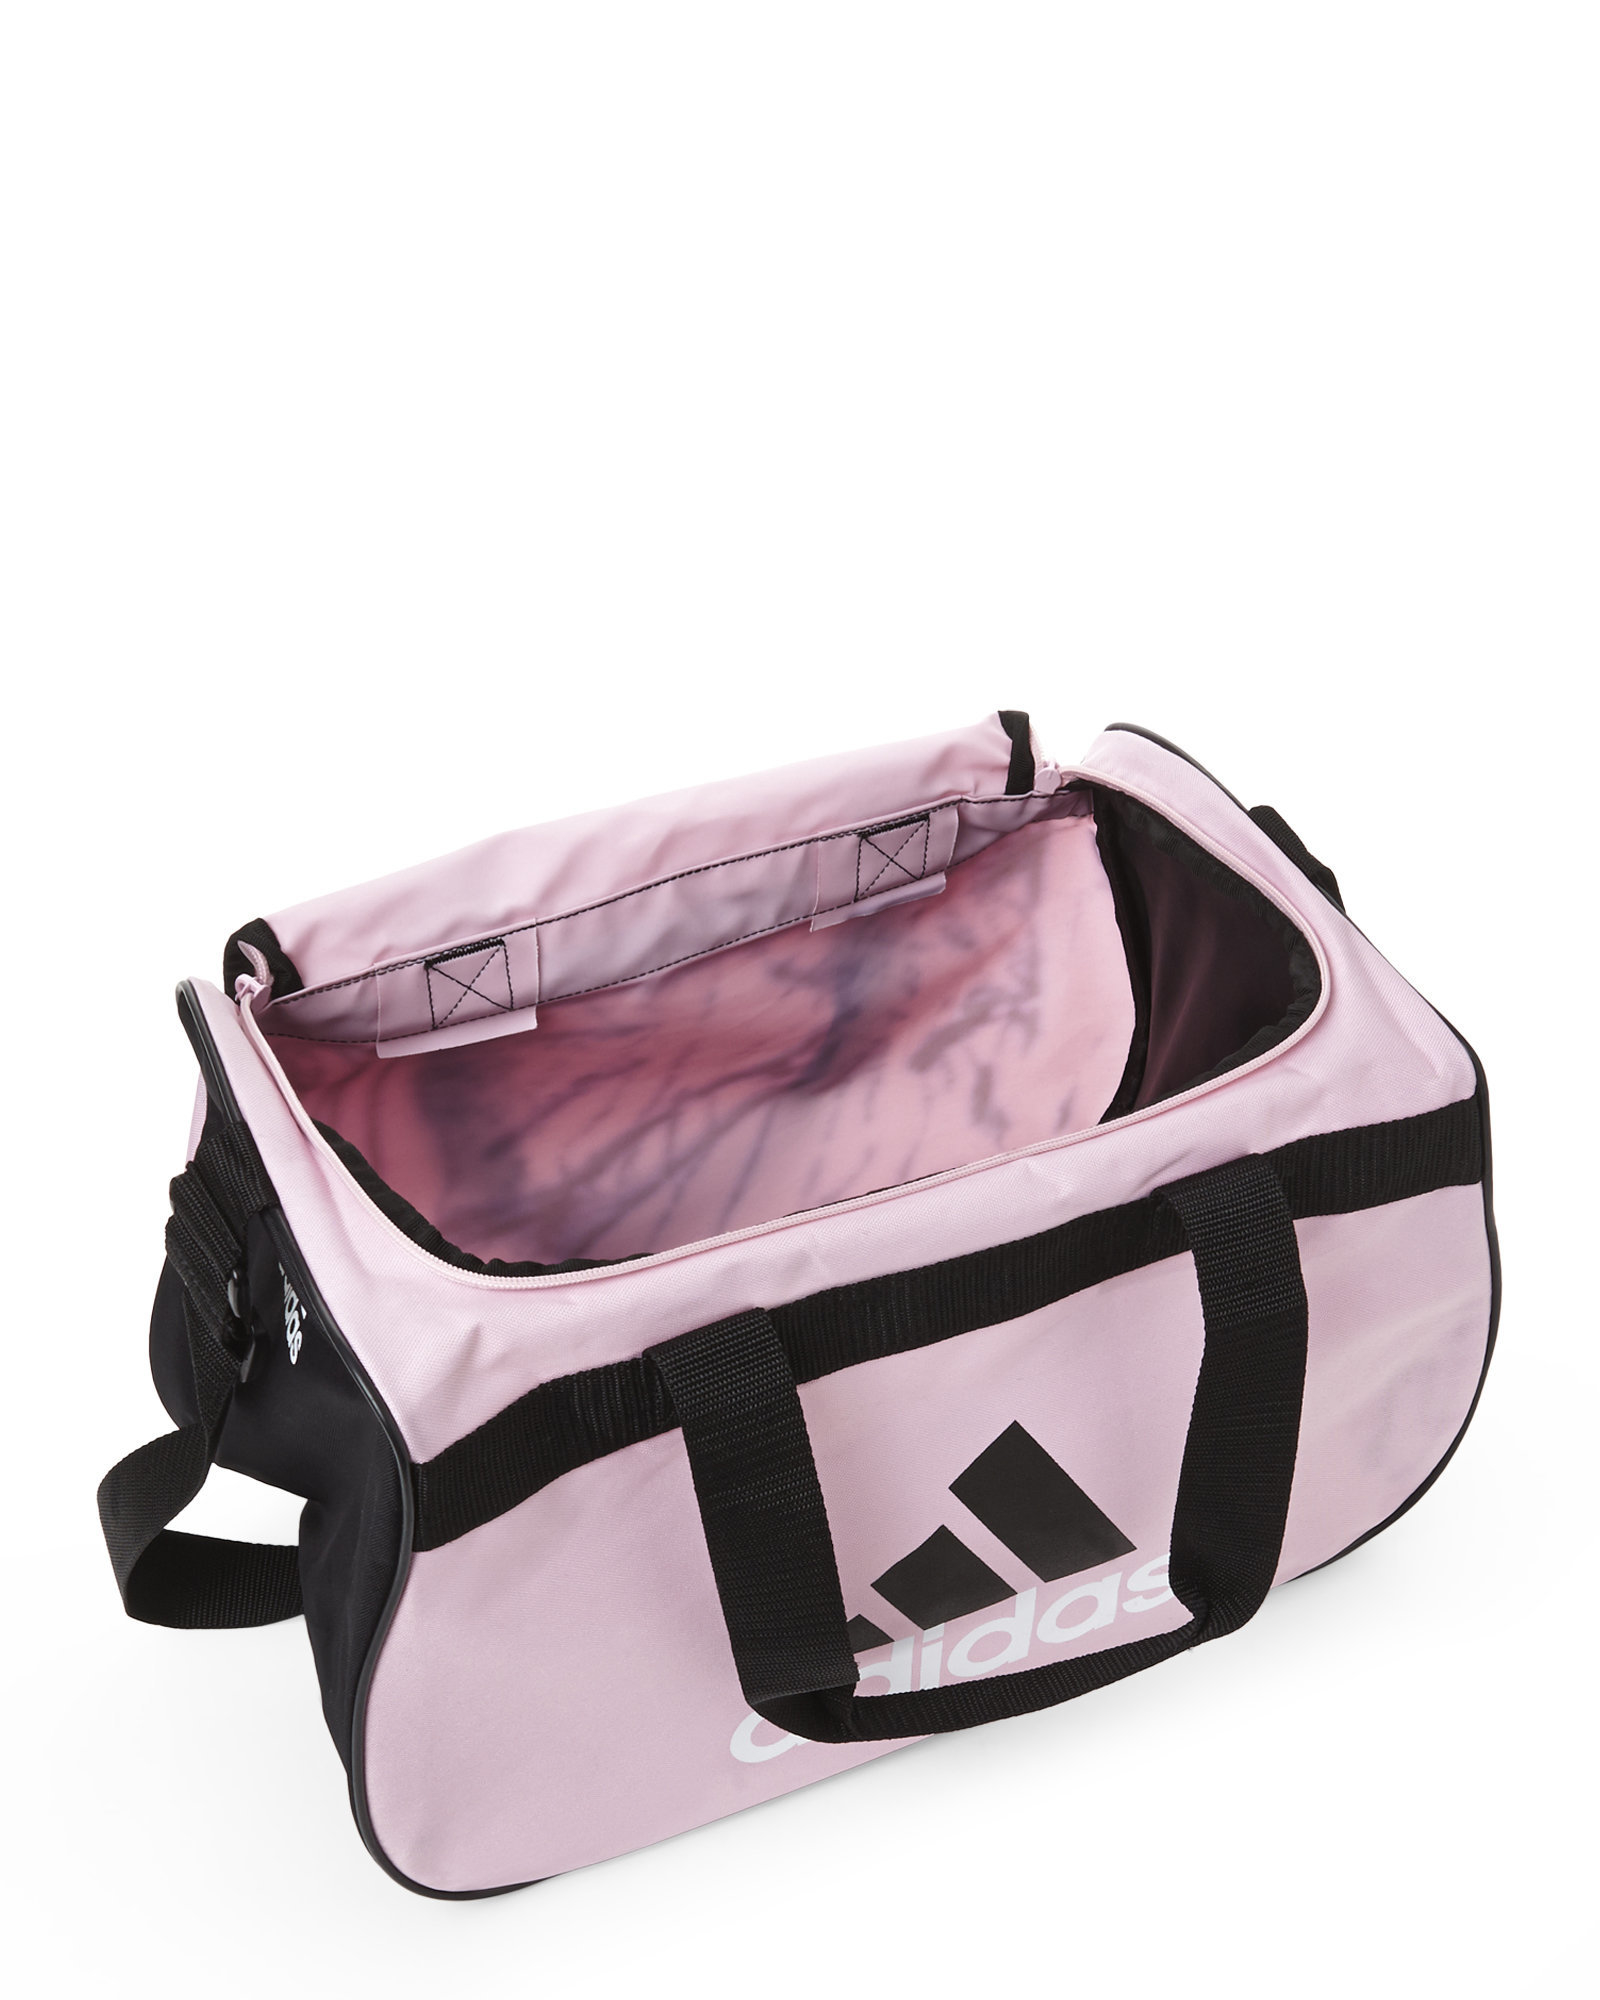 6f14046003 Gallery. Previously sold at  Century 21 · Women s Duffel Bags ...